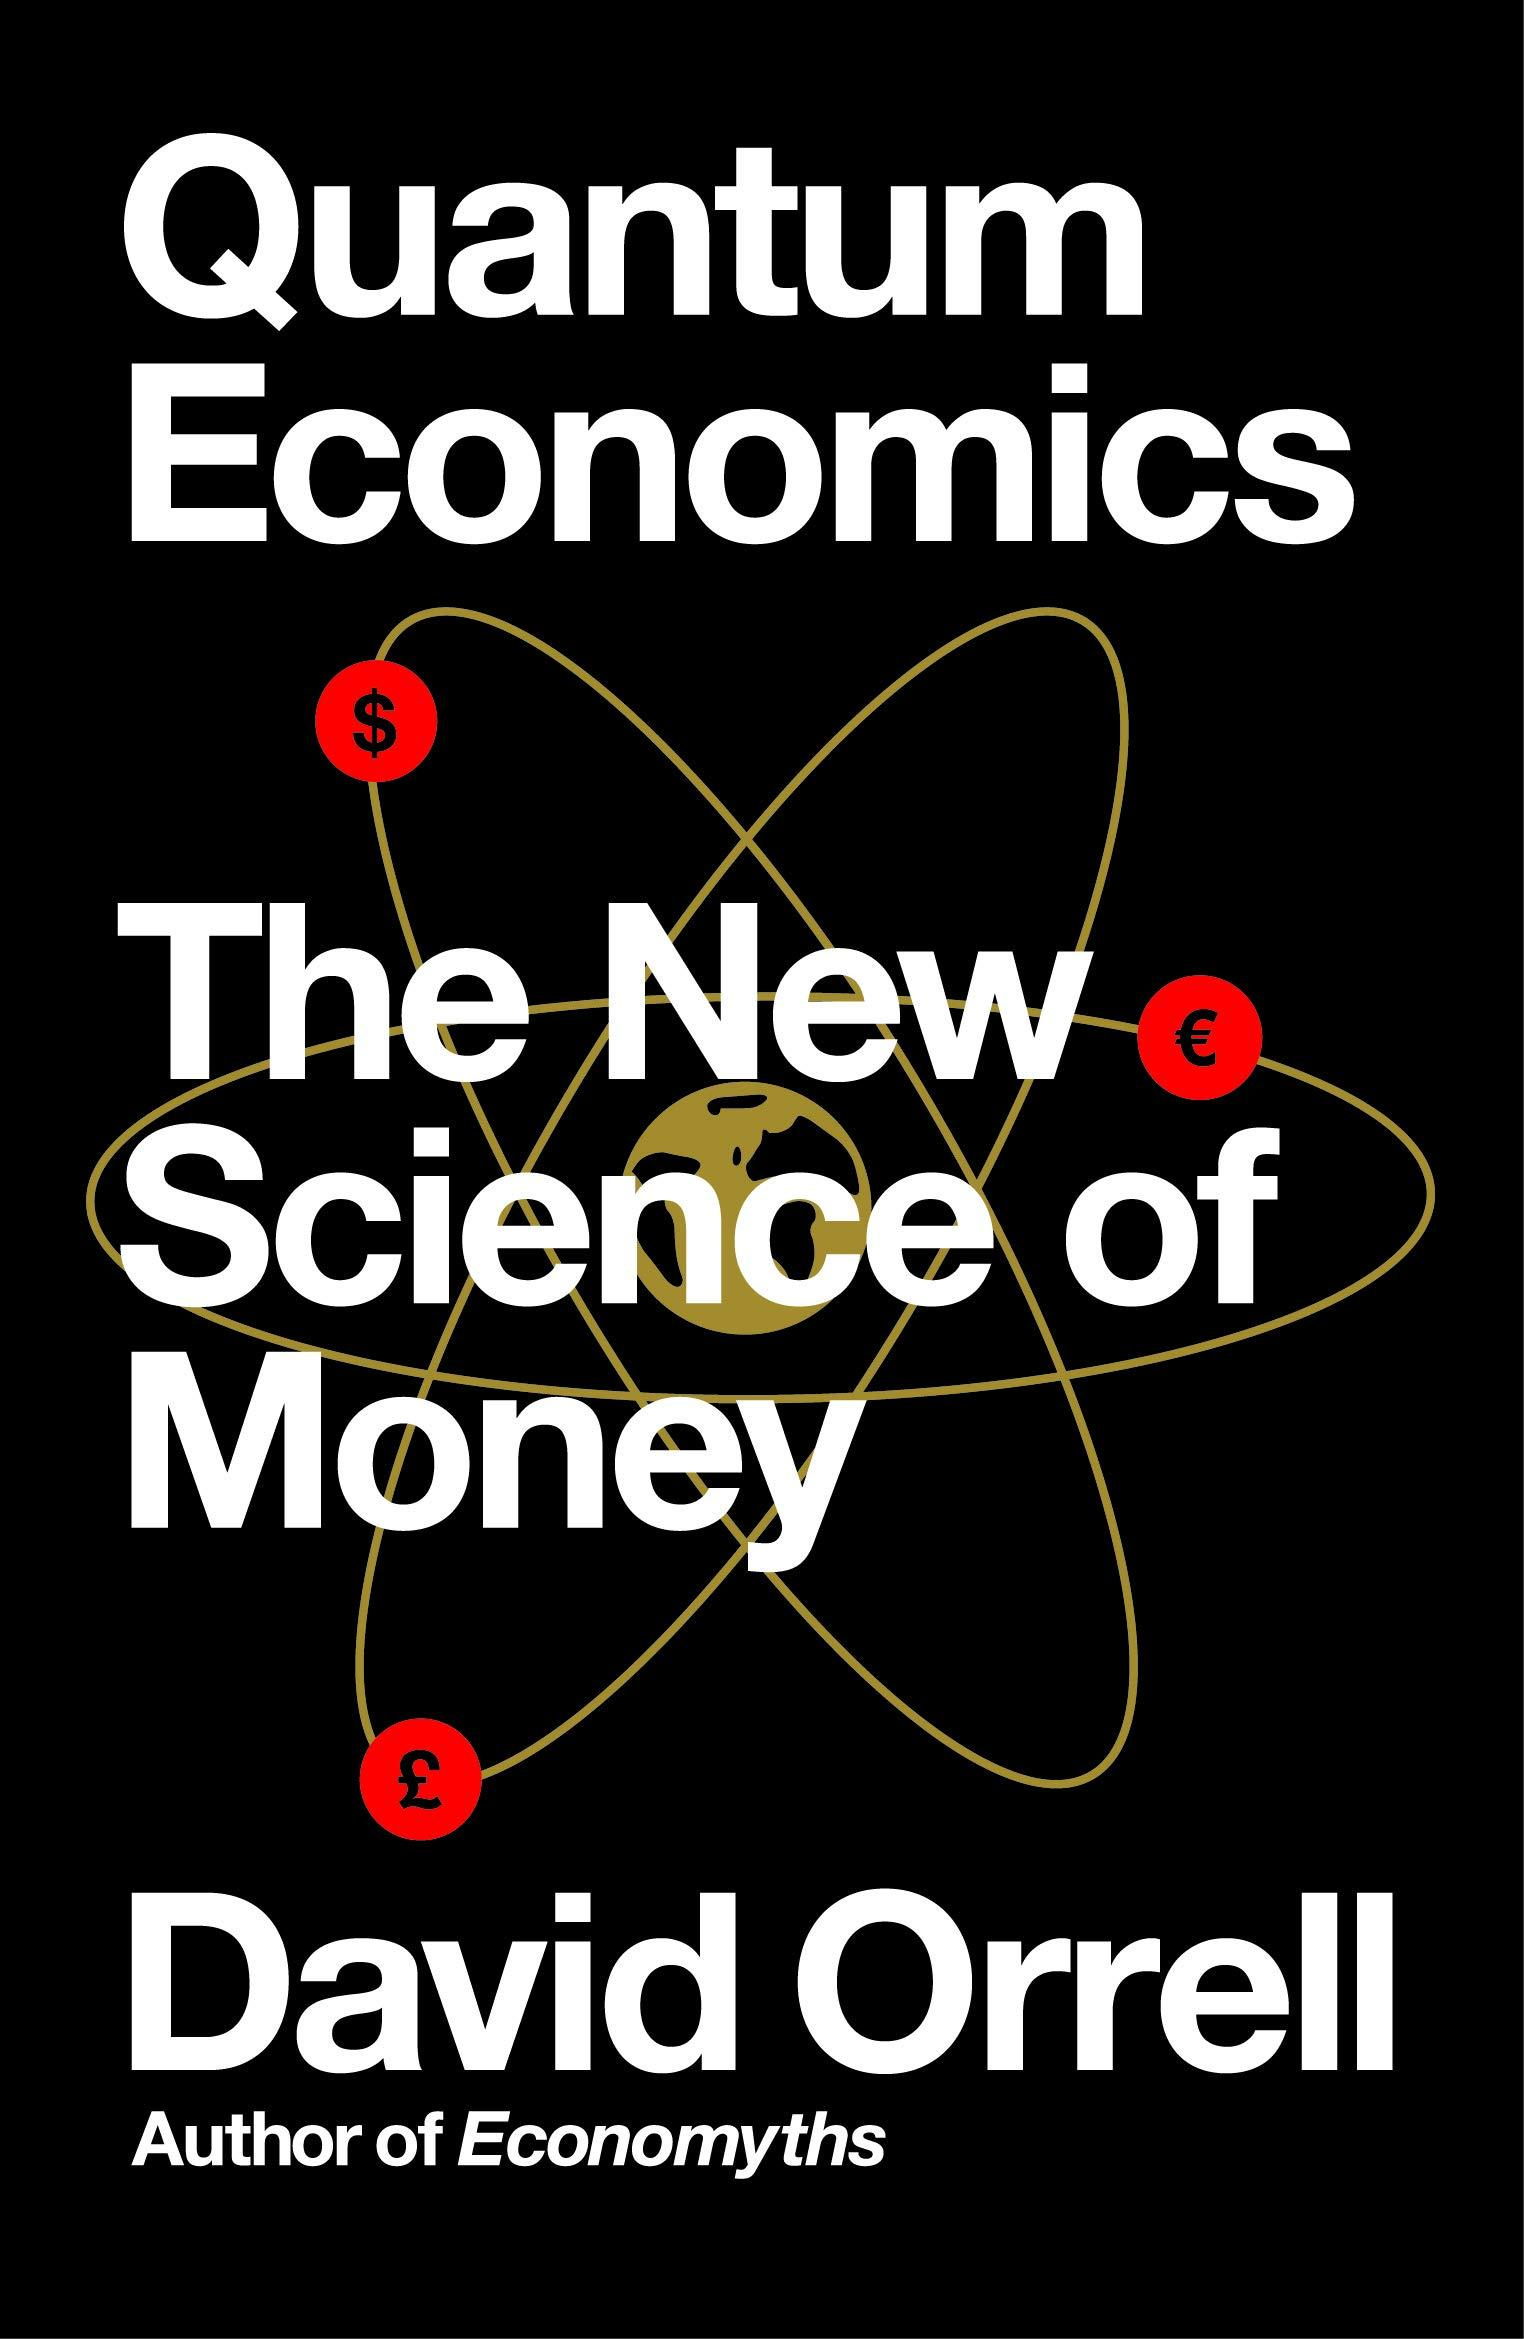 Quantum Economics: The New Science of Money by David Orrell